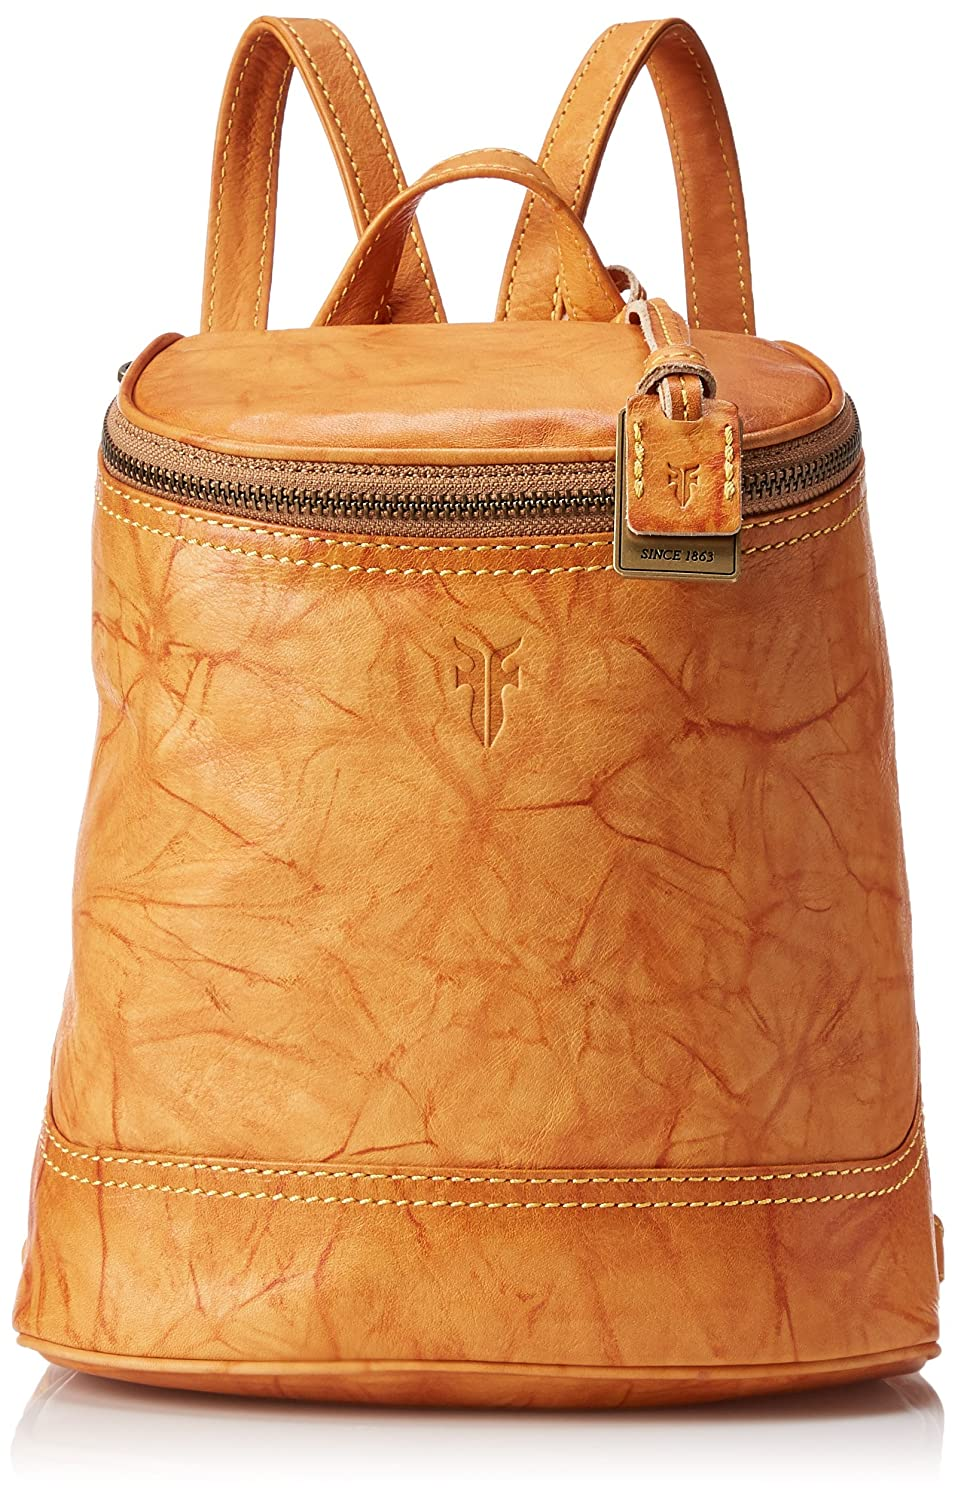 FRYE Campus Small Backpack, Sunrise, One Size